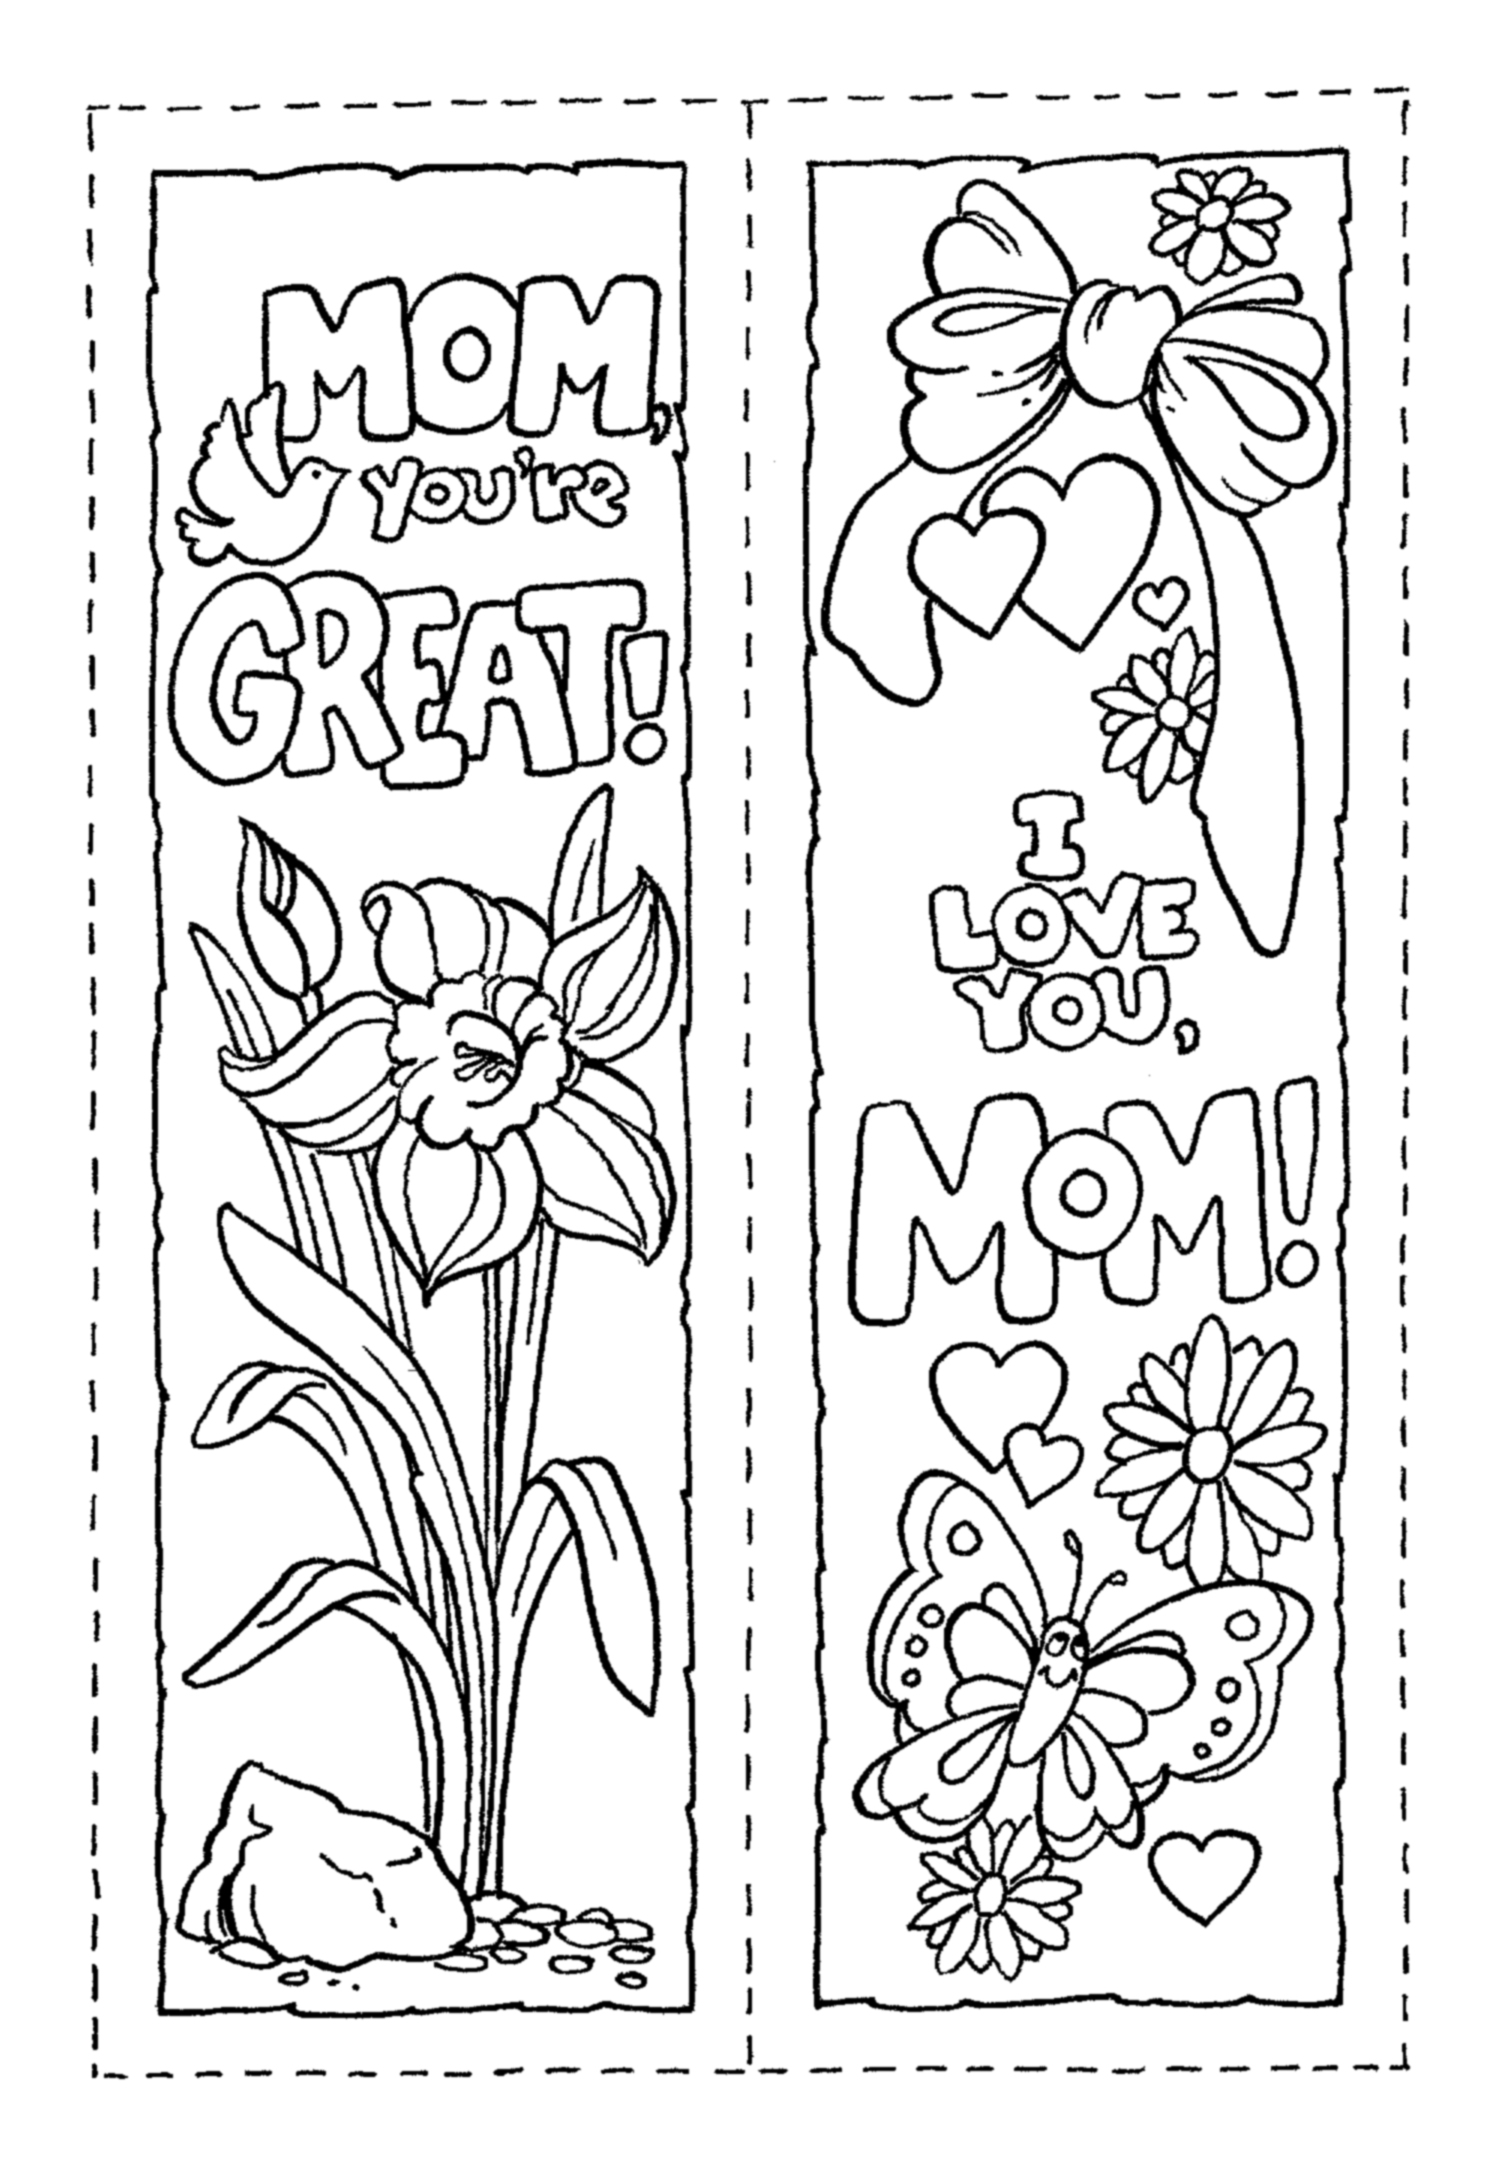 7 Images of Day Mother Printable Bookmarks Template